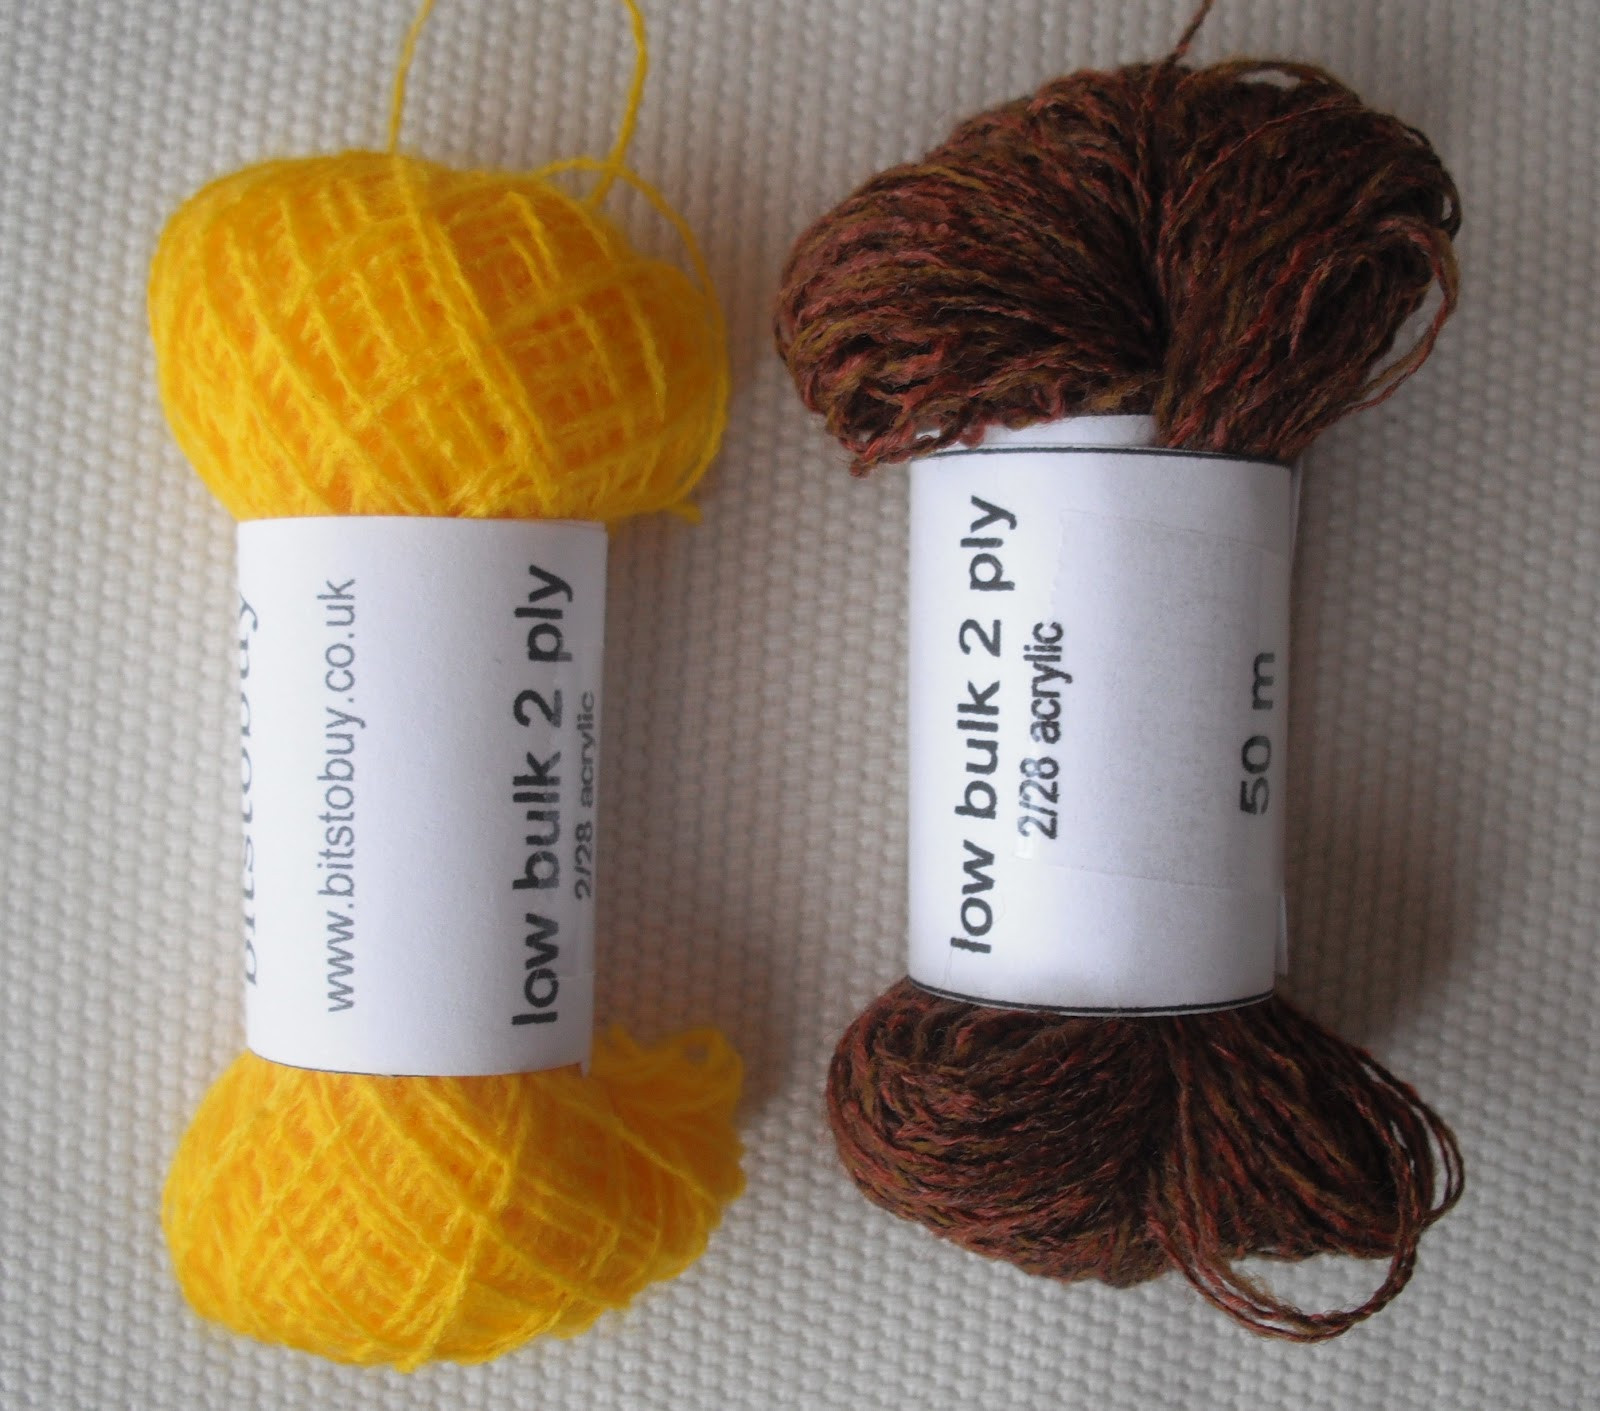 bitsto FREE yarn with all website orders